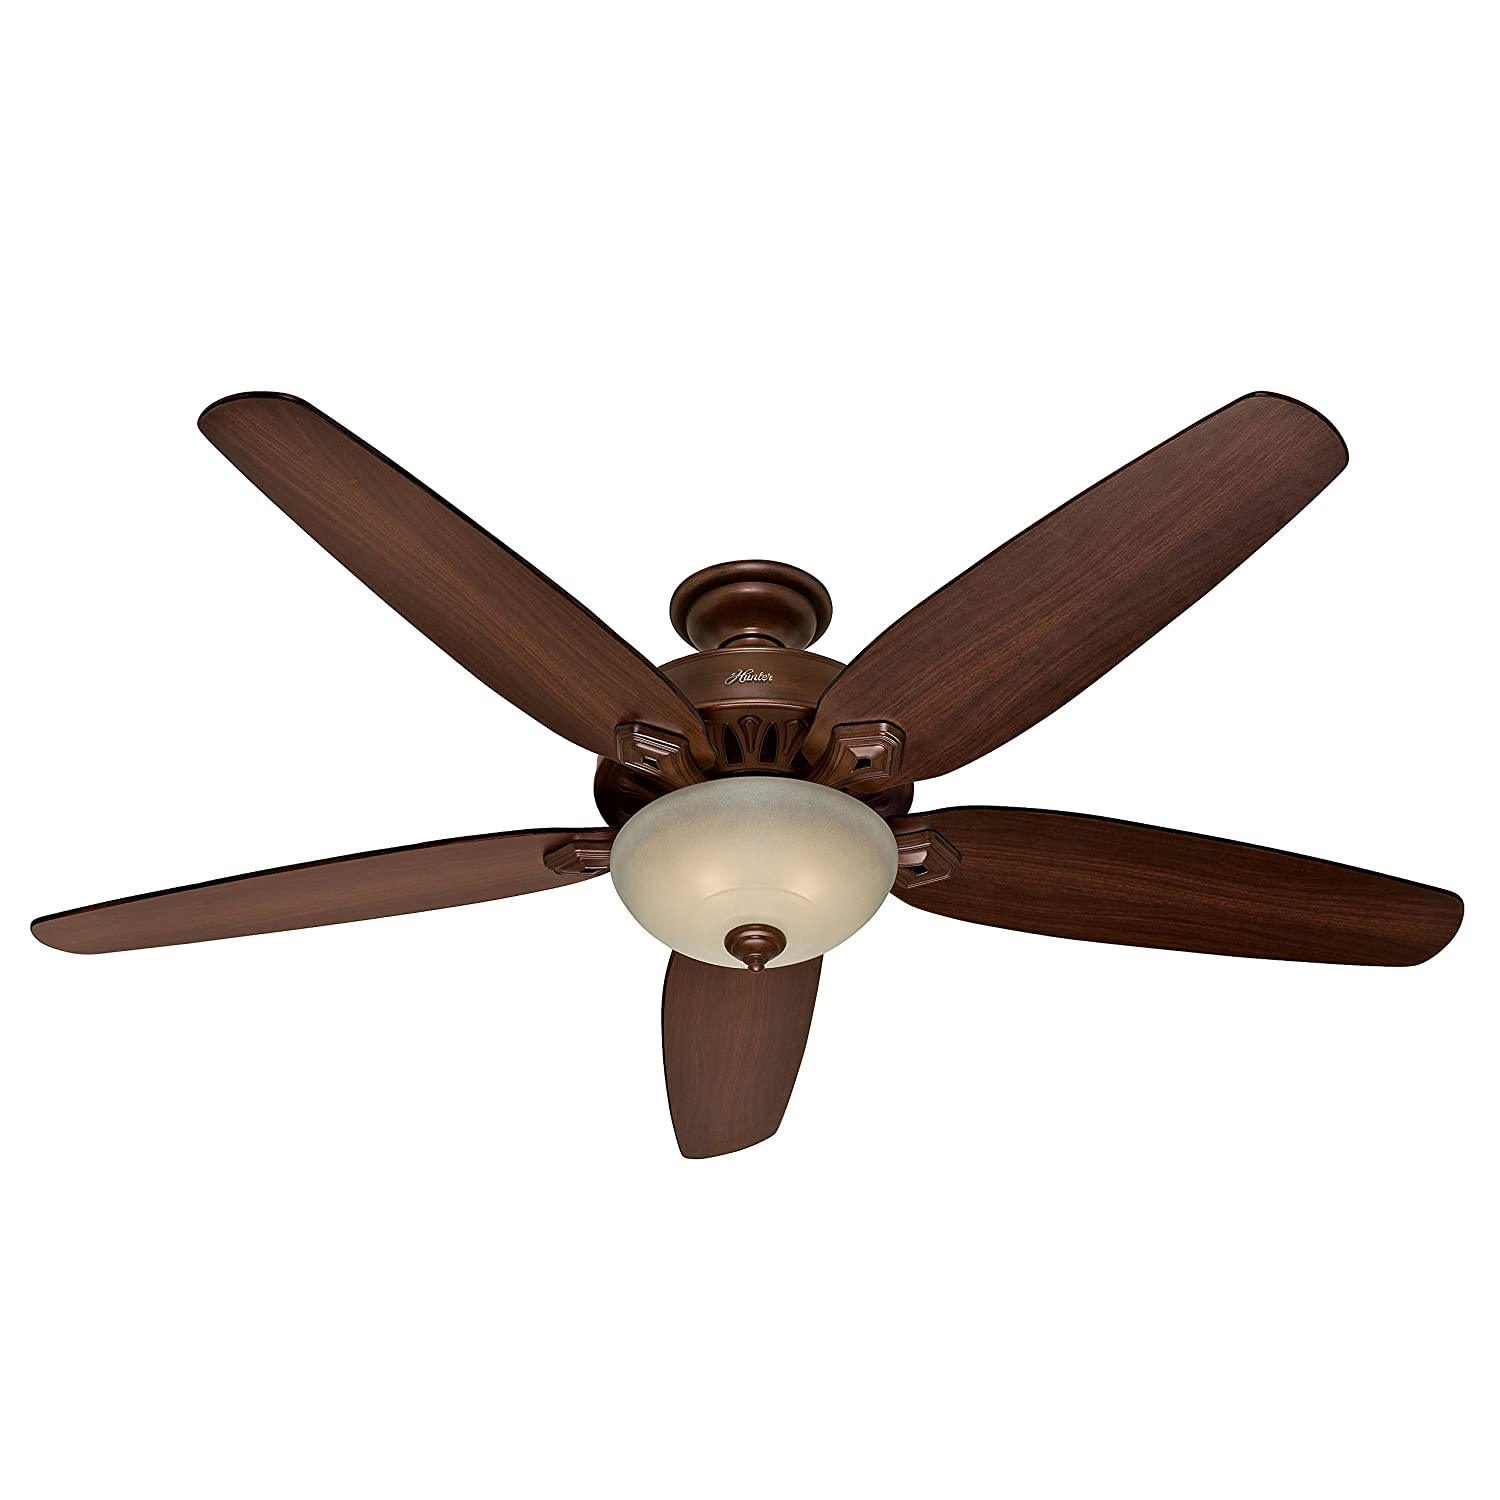 light fanimation walnut in overstock cherry free finish product fan with today inch ceiling pewter home garden camhaven shipping blades